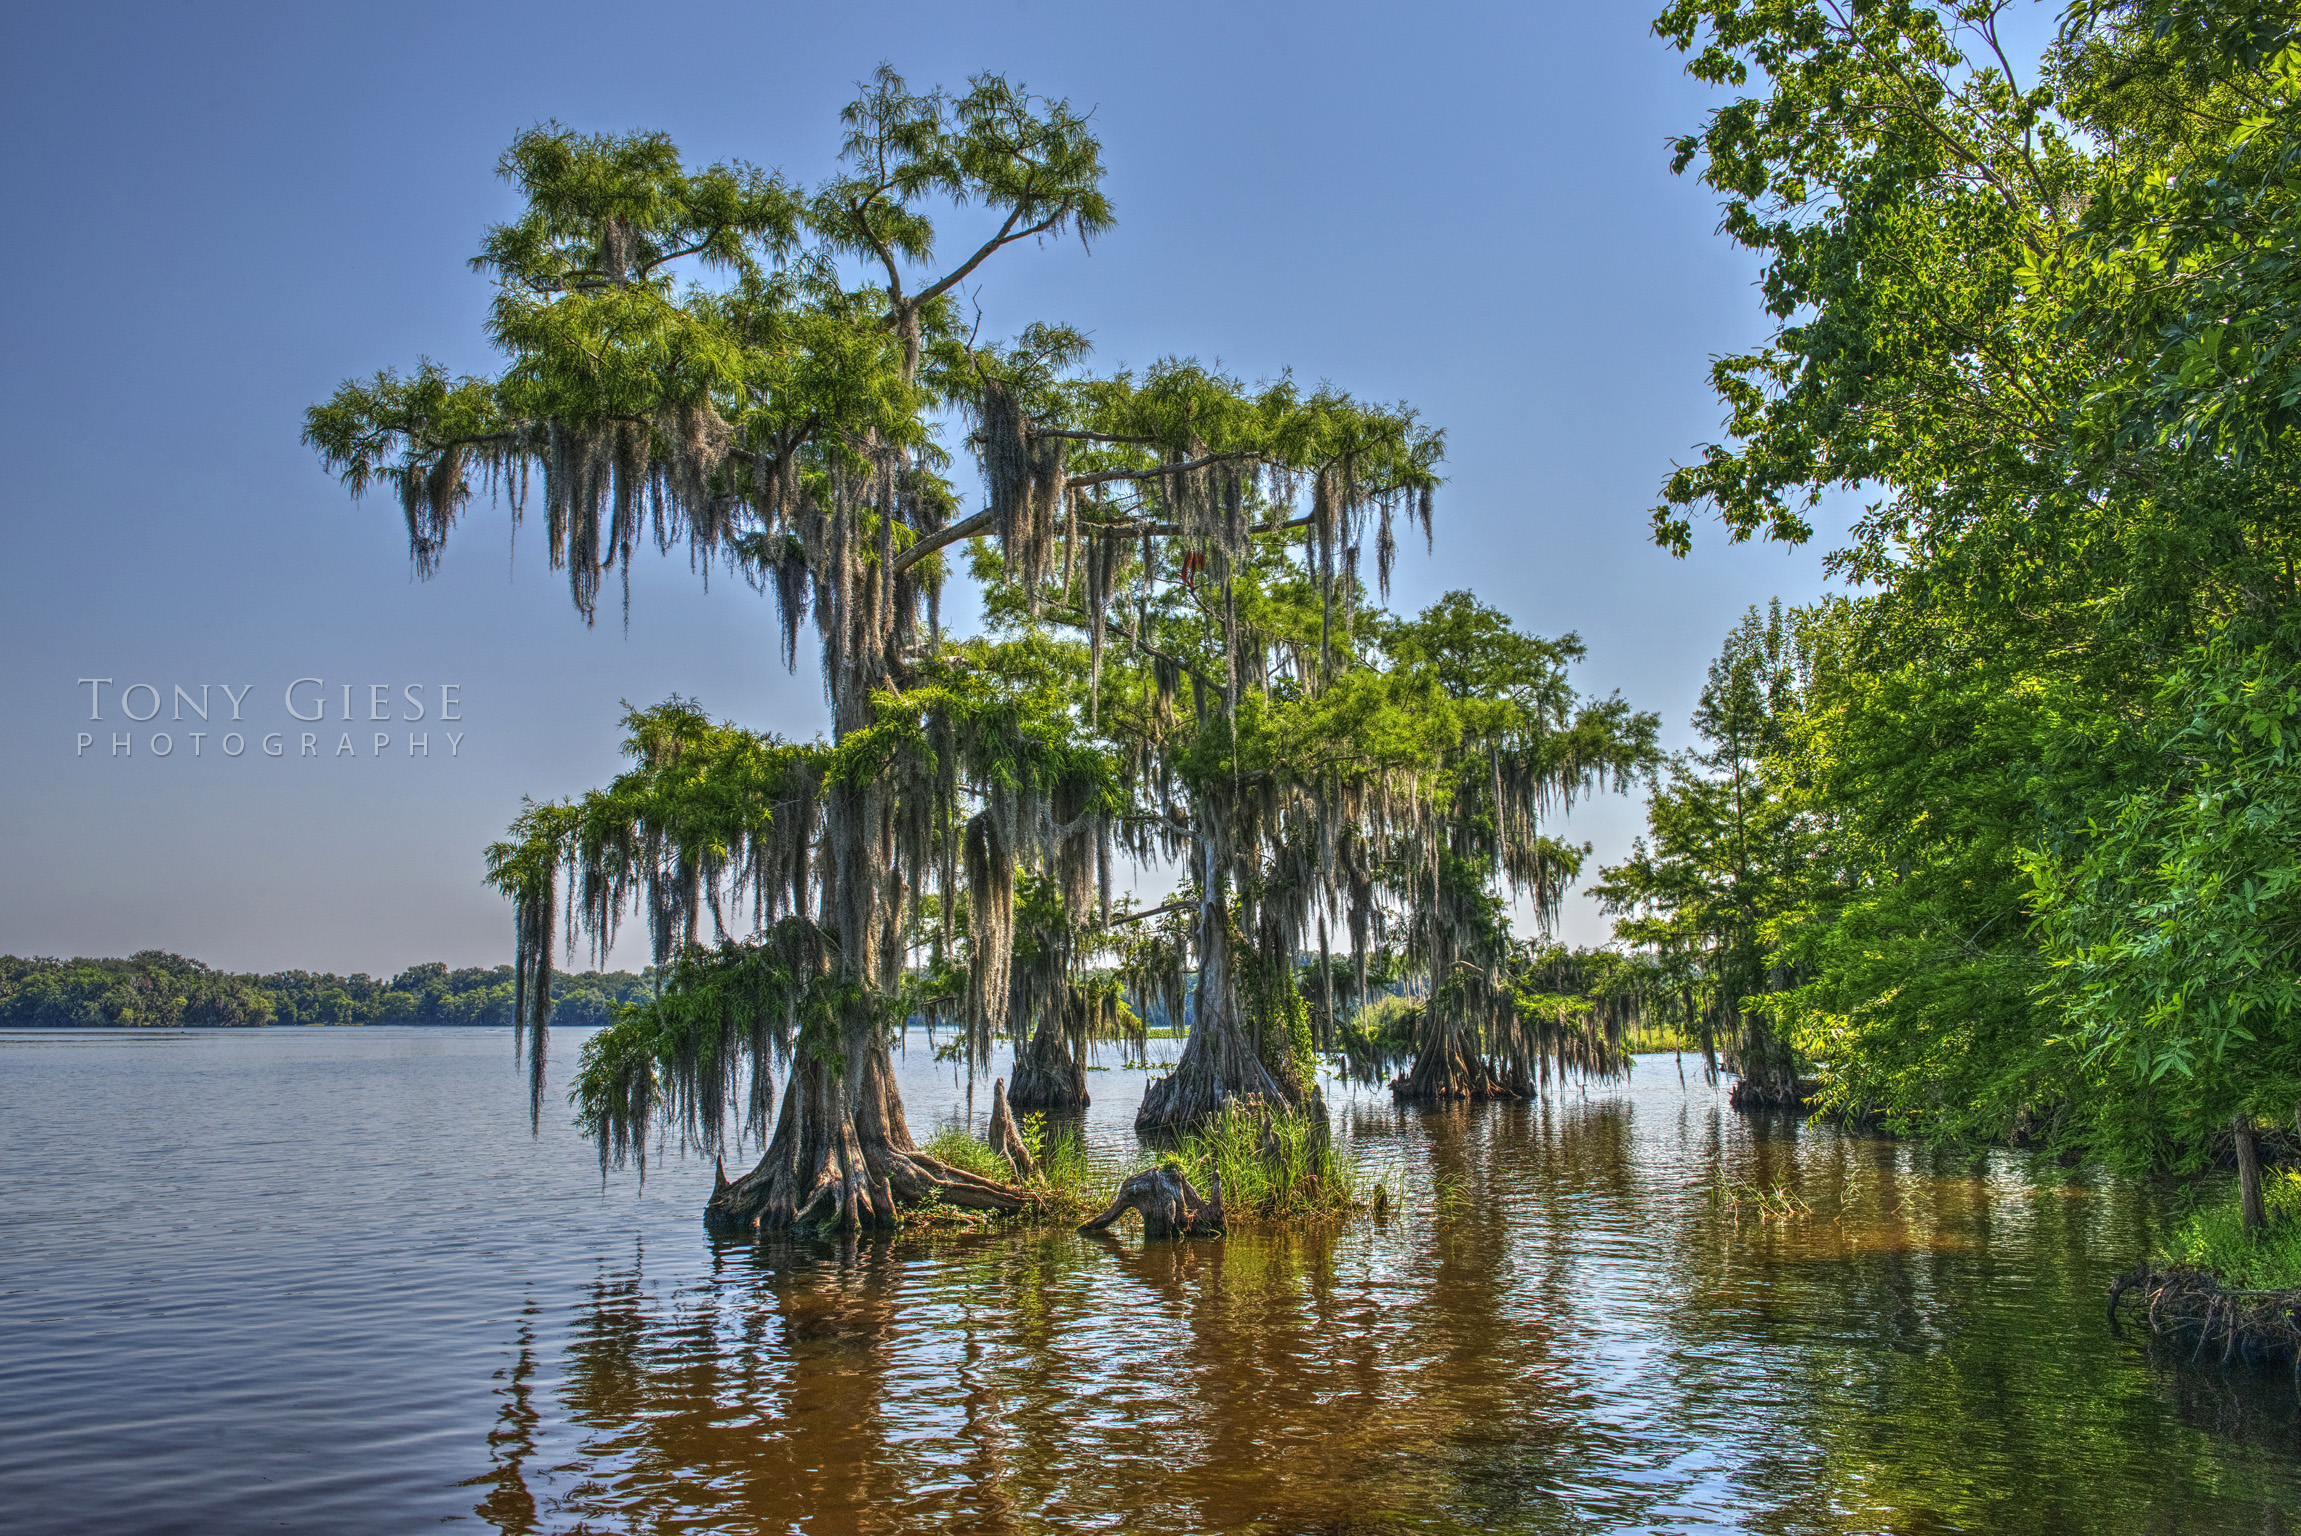 The St. John's River is landscaped with beautiful bald cypress north of Sanford Florida. Photograph by Tony Giese Photography